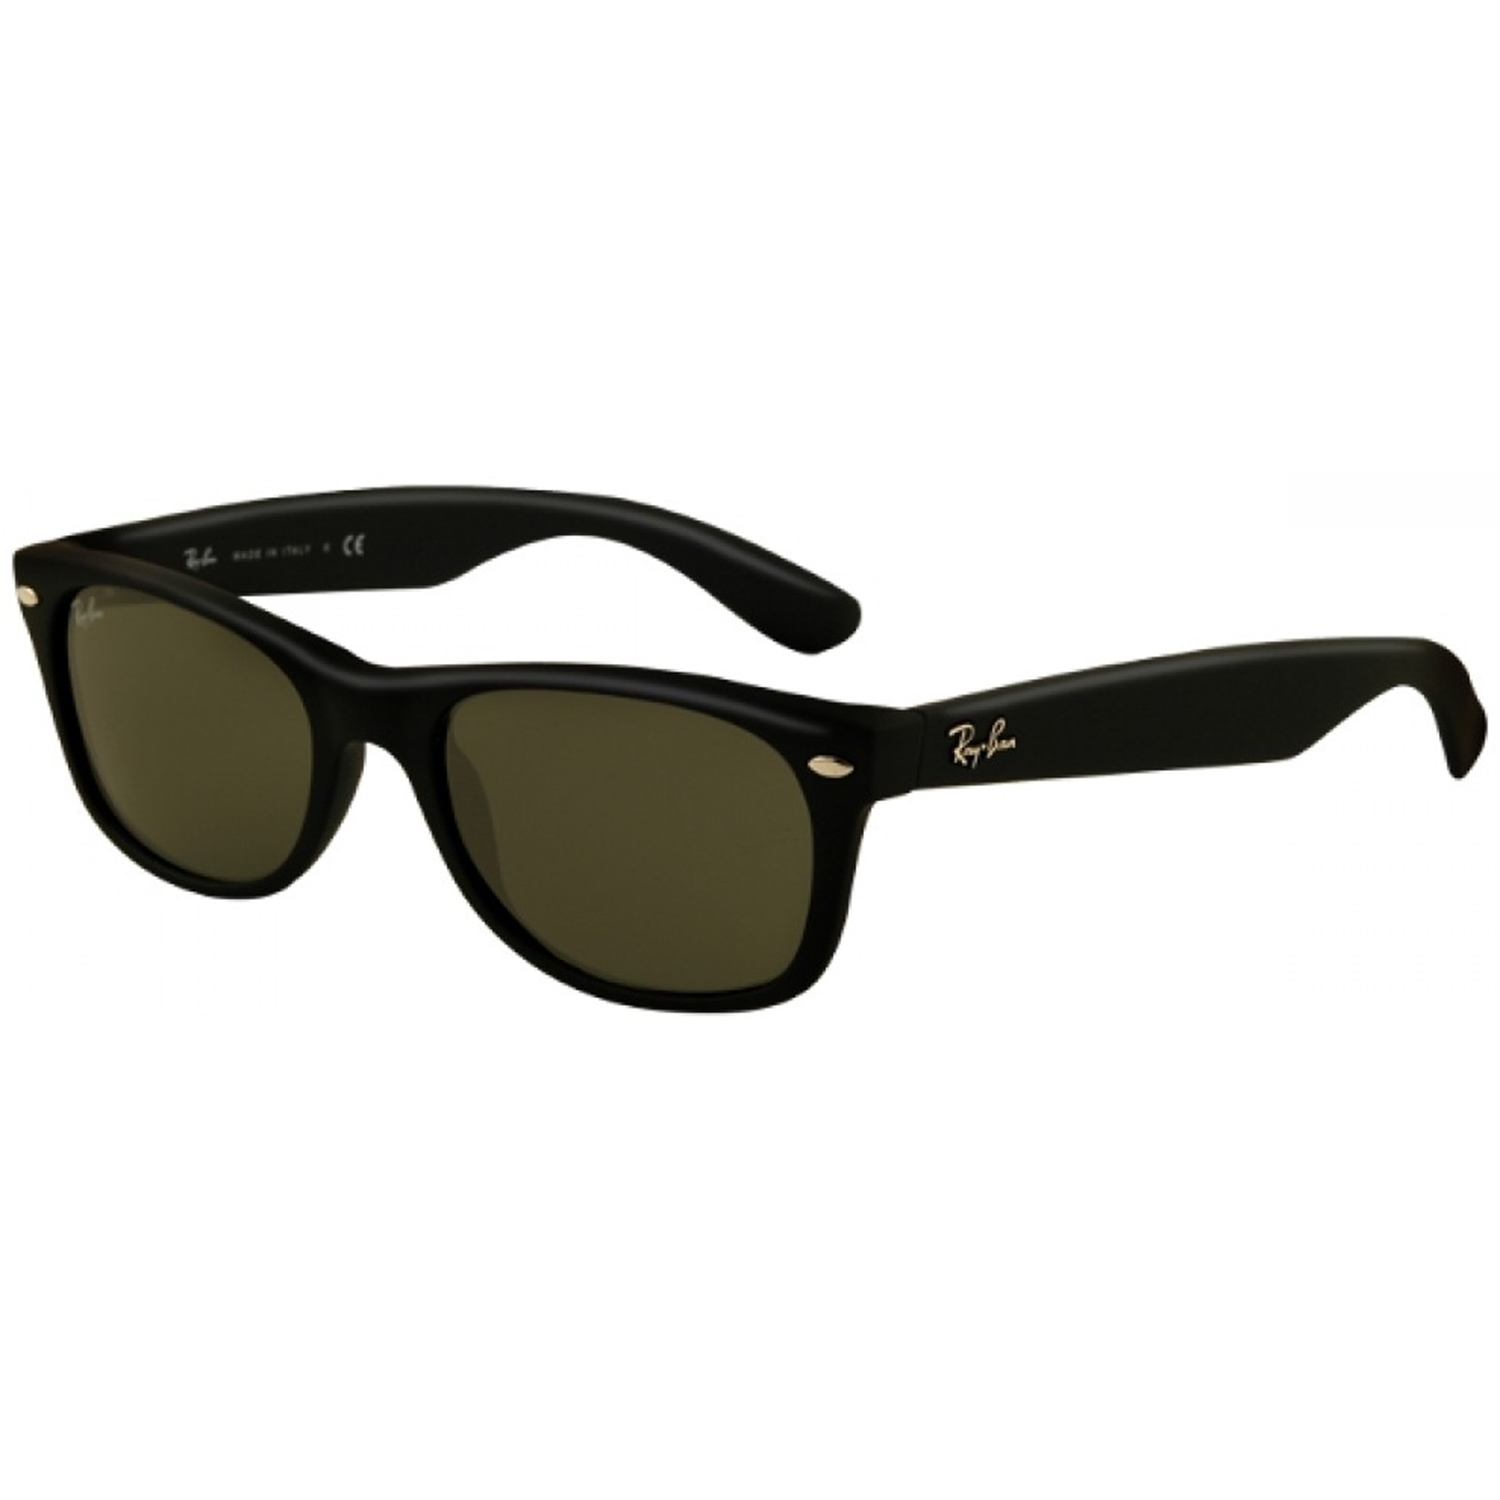 Ray-Ban Men\u0026#39;s New Wayfarer RB2132-622-52 Black Oval Sunglasses - Walmart.com